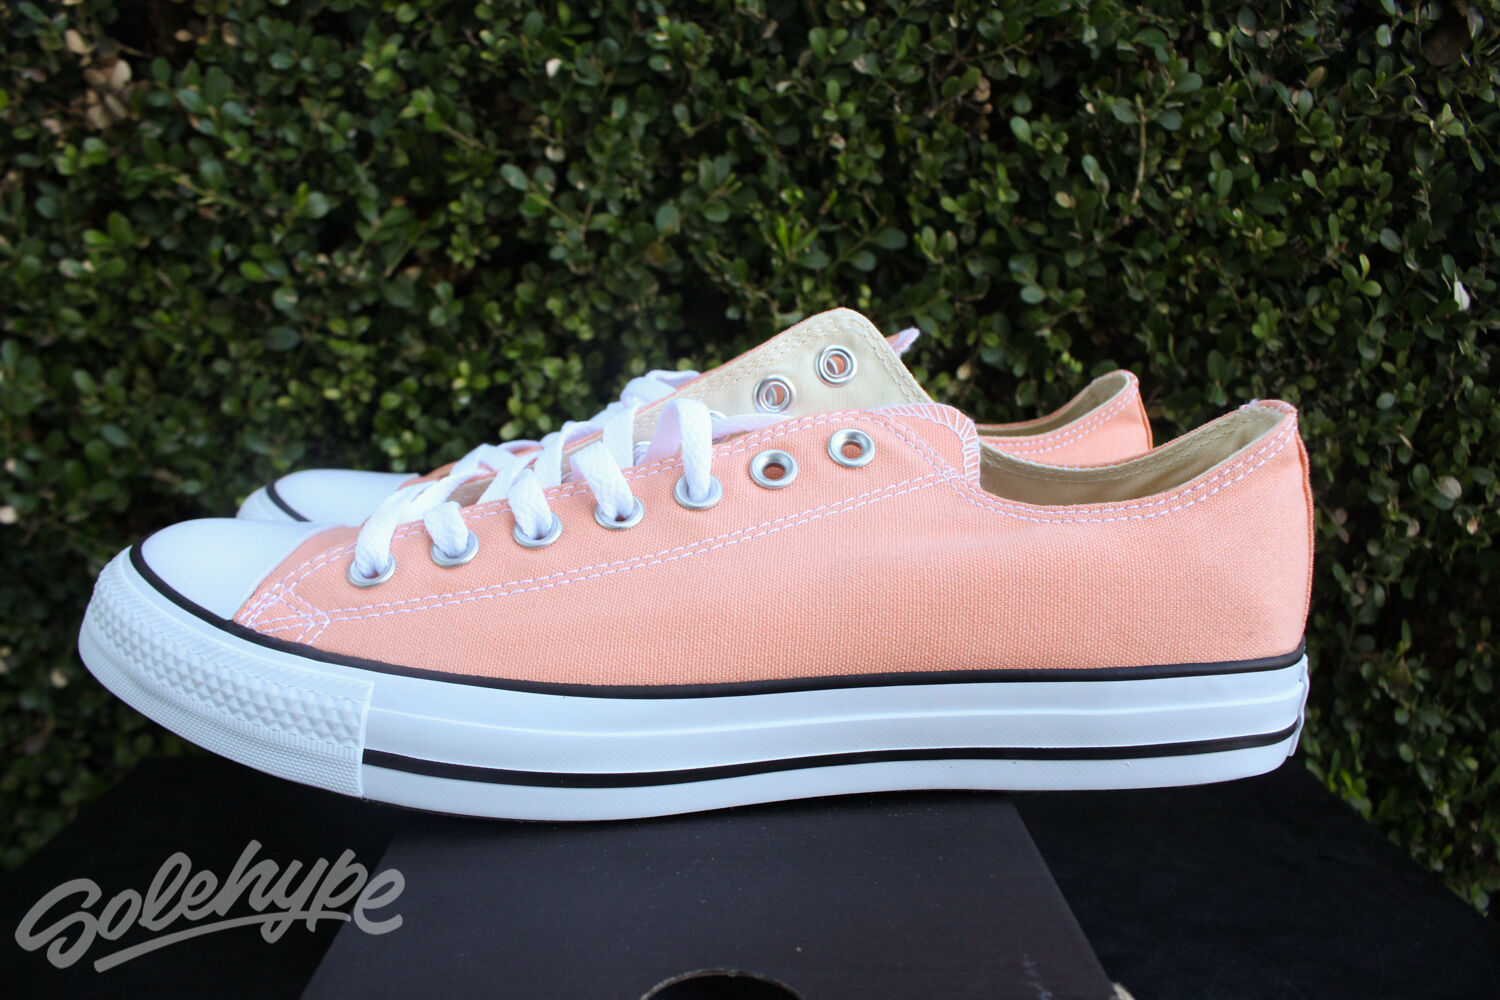 Converse chuck taylor all star bue sz sunset 8 sunset sz glow 155573f 01fee0